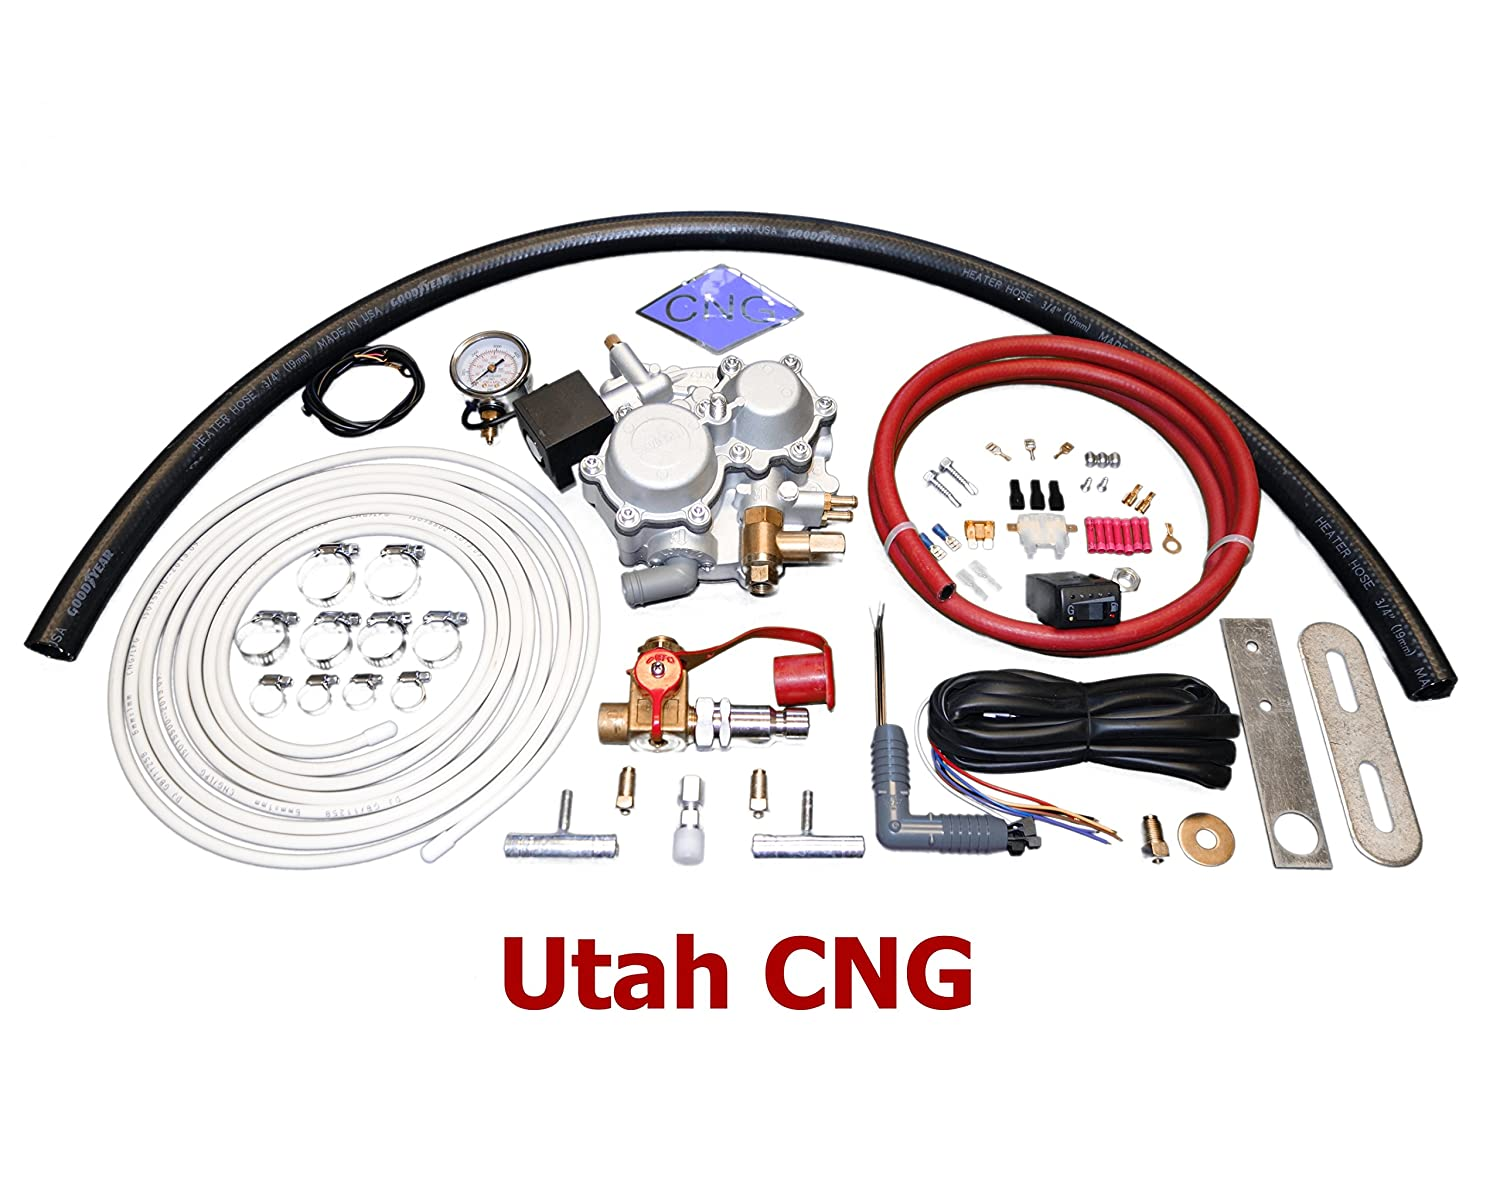 Amazon com: Utah CNG 4, 6 and 8 Cylinder Diesel Auto and